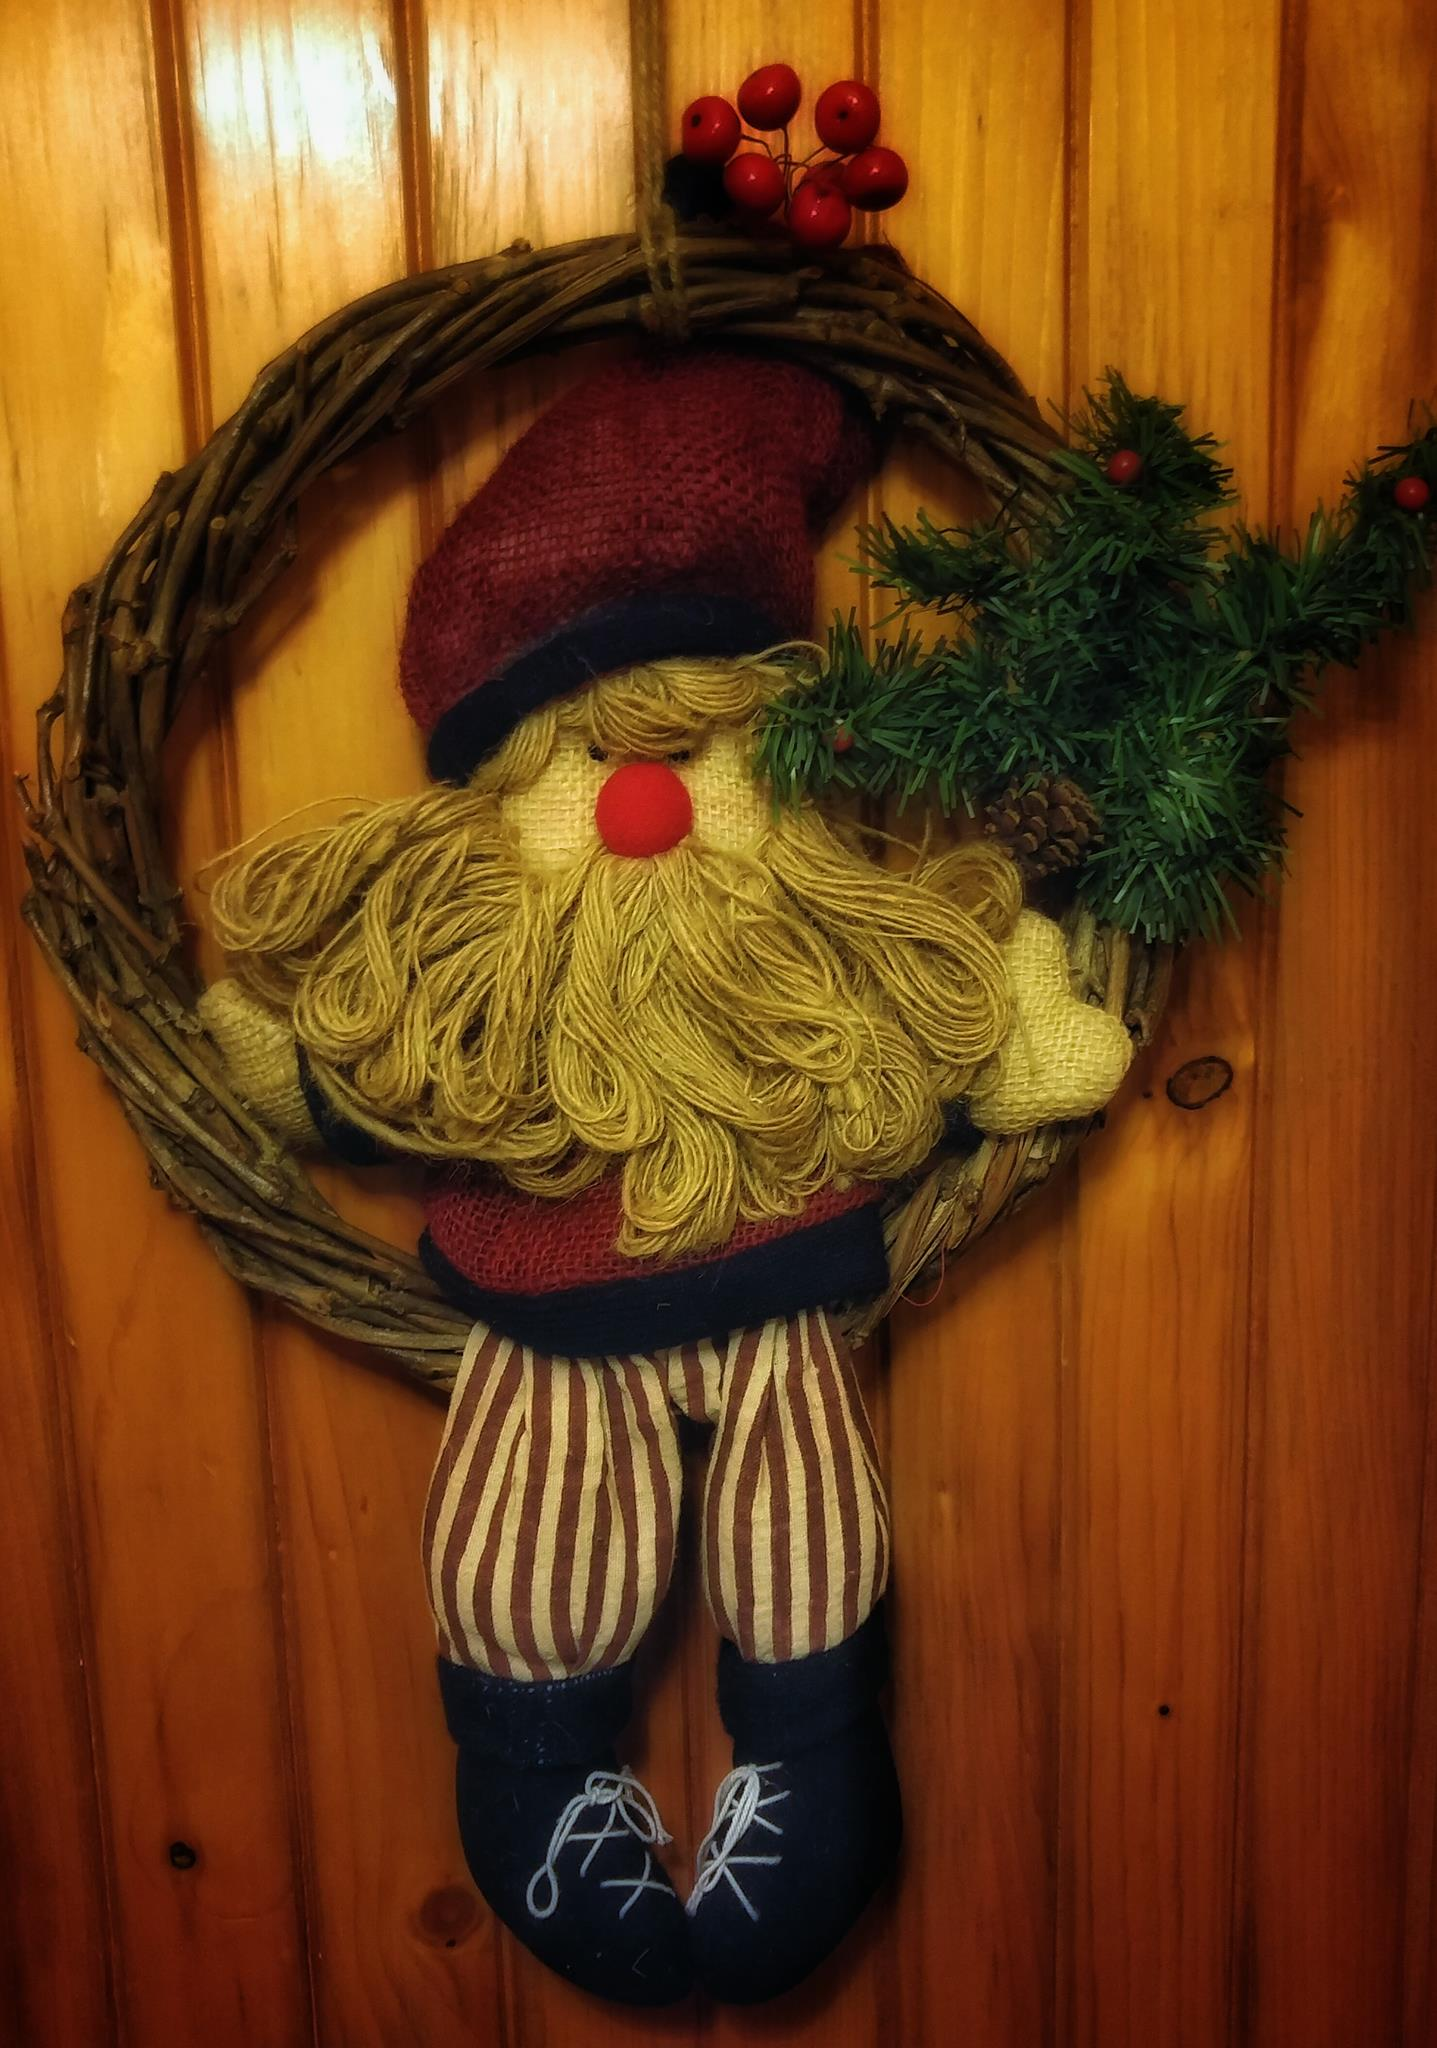 A crafty Santa wreath hangs on a wood wall